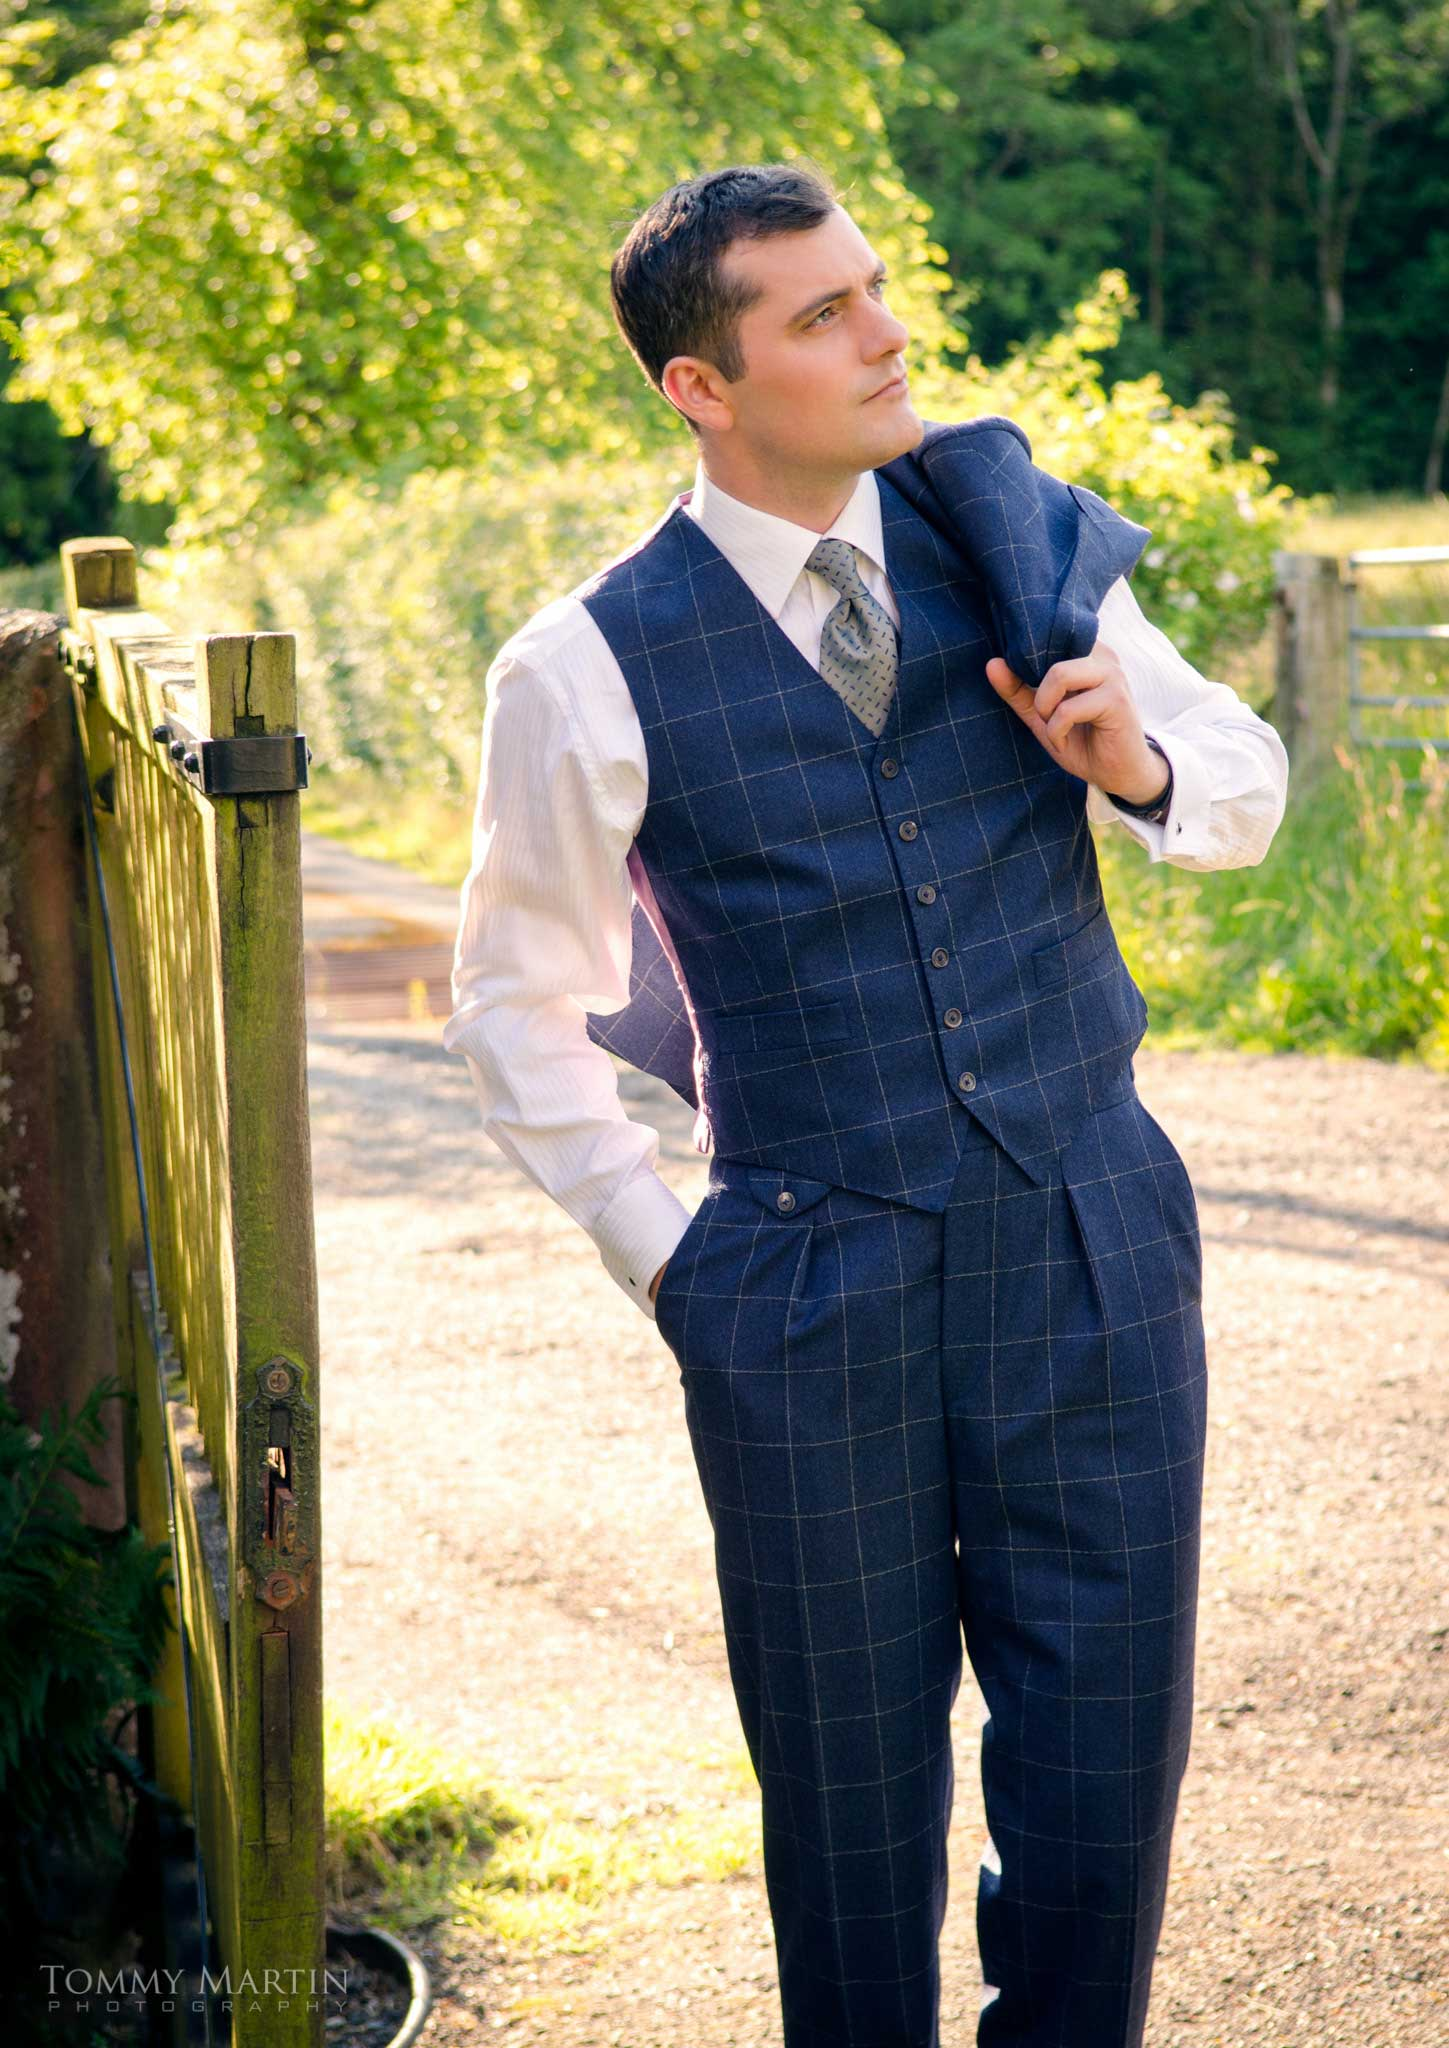 Made to measure 3 piece suit in navy large check